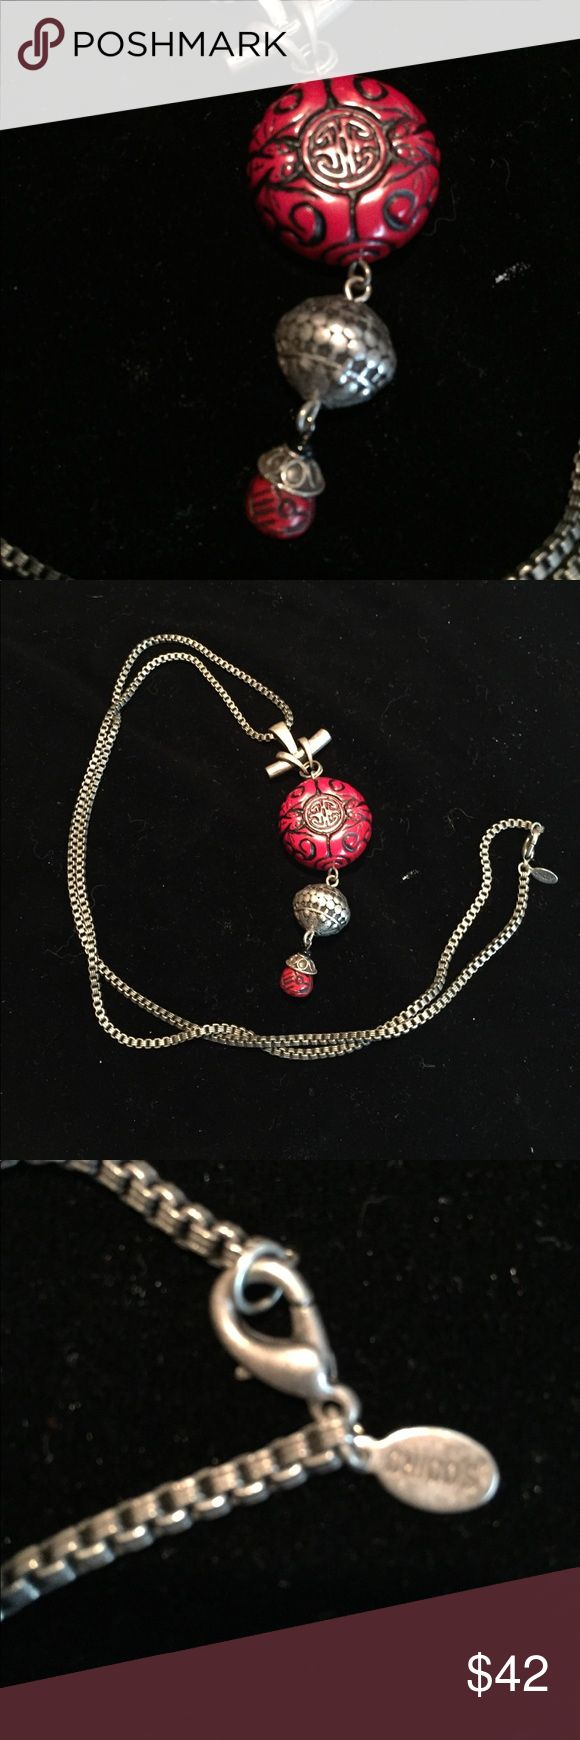 Chico's Asian inspired long necklace Statement piece on long chain.  Red black and gold tones.  Very nice looking piece! Chico's Jewelry Necklaces